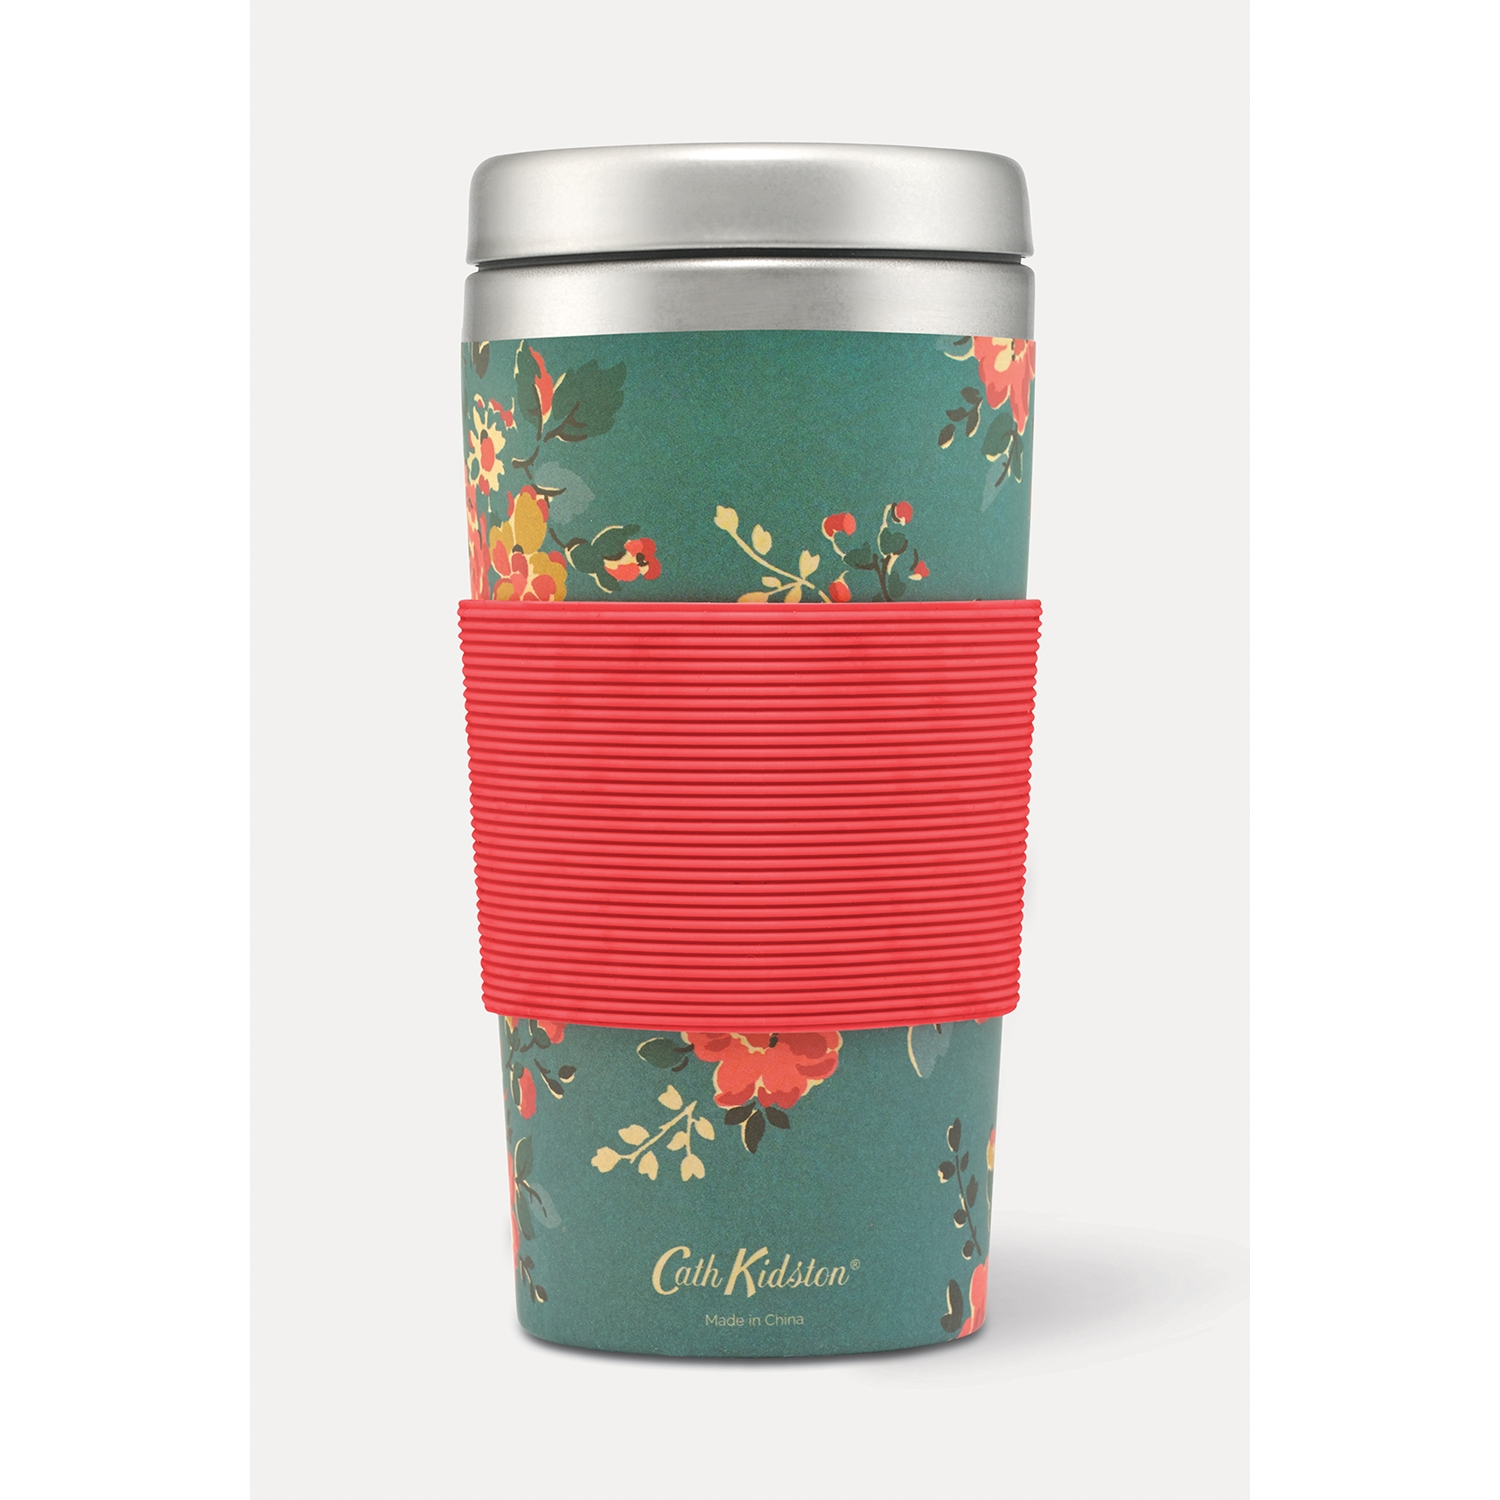 Image of Cath Kidston Travel Cup Kingswood Rose, Teal